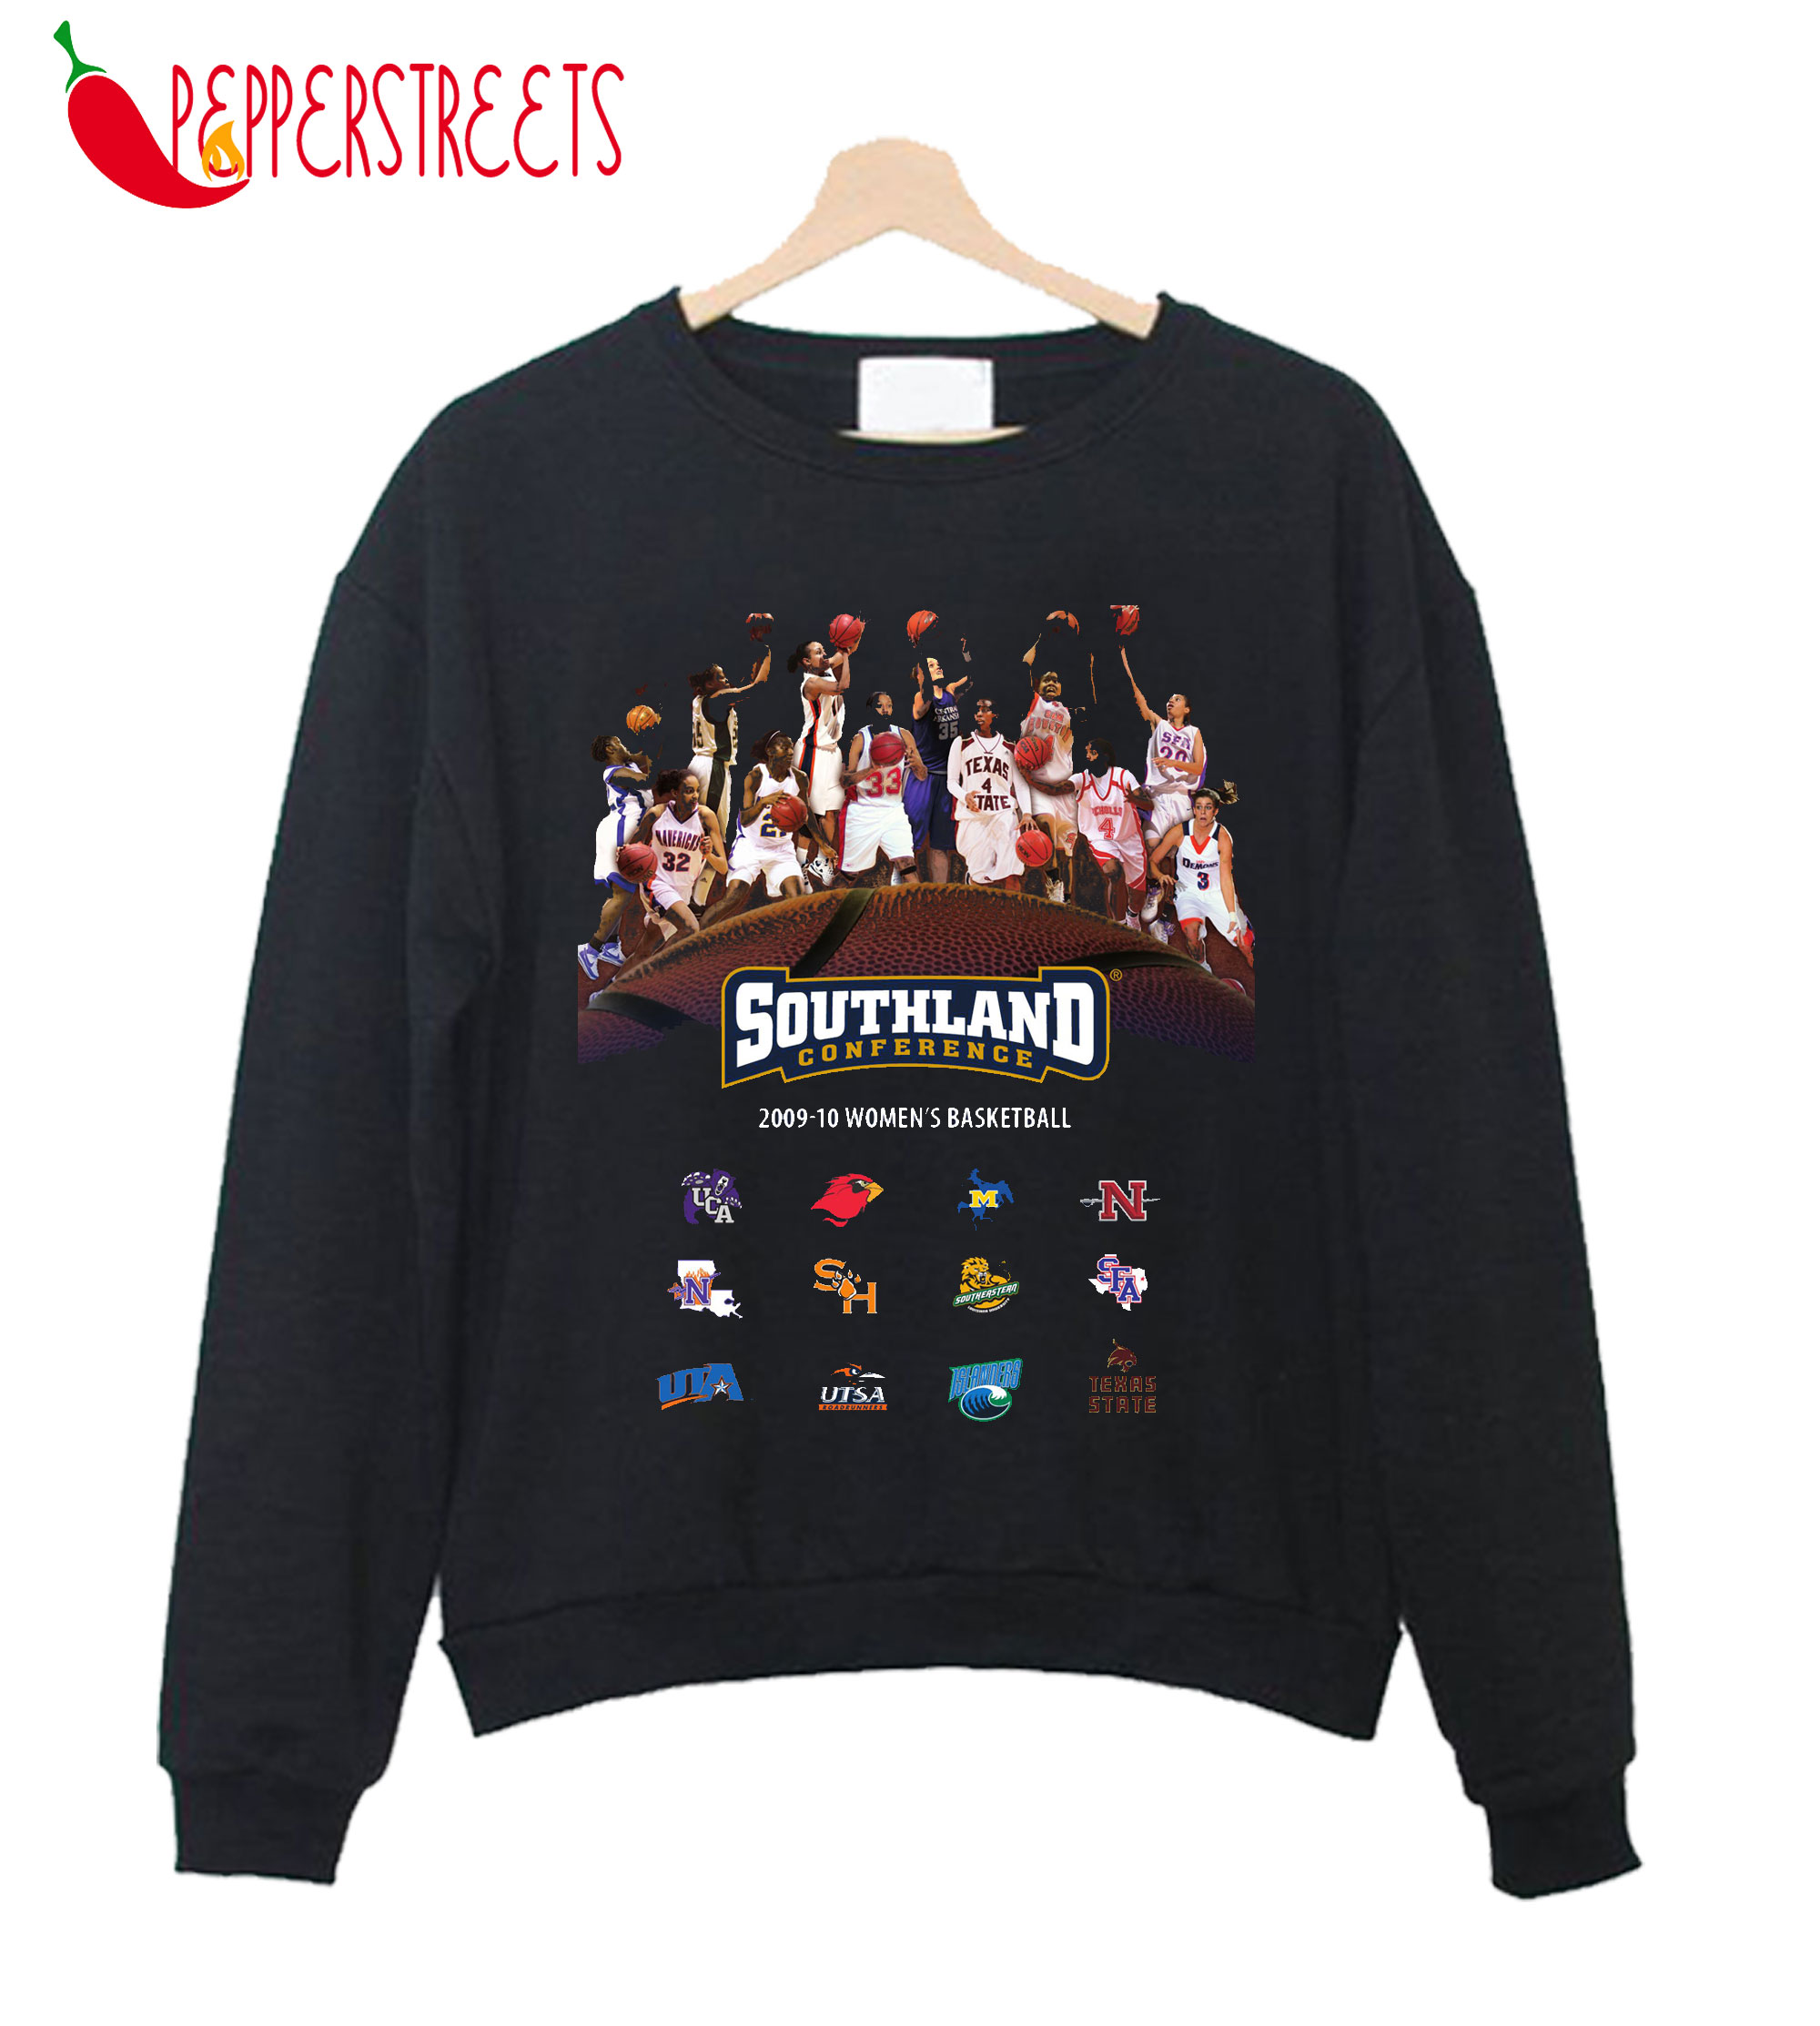 2009-10 Southland Conference Women's Basketball Sweatshirt